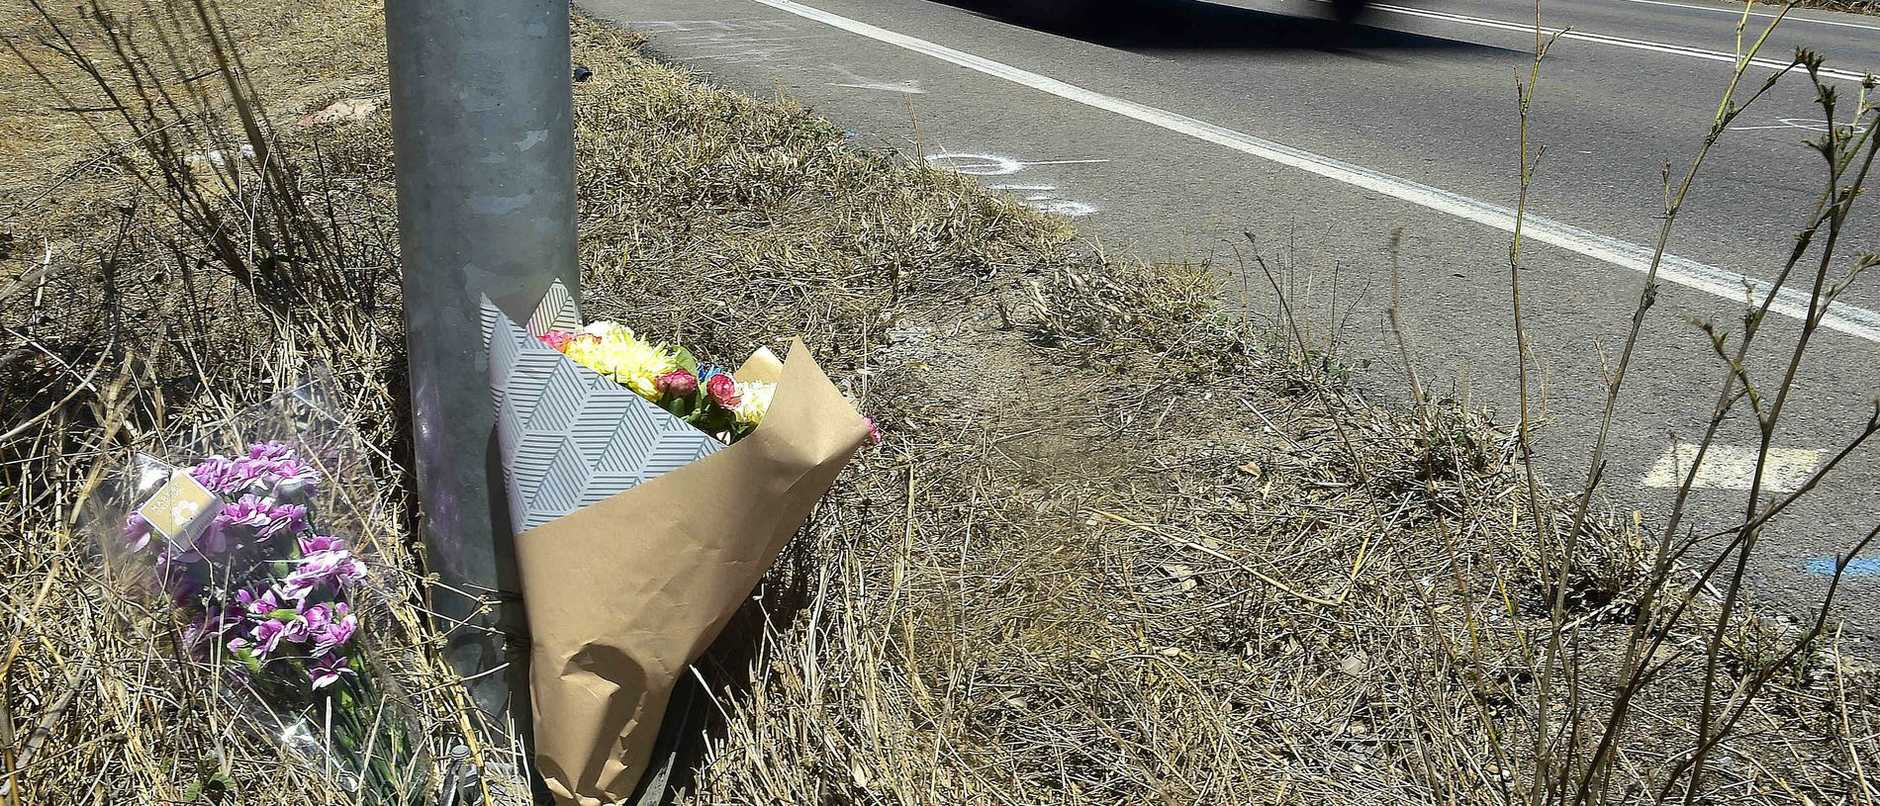 An MP says upgrades to a horror stretch of road are essential after a young woman became the fourth person killed on a notorious area of highway.